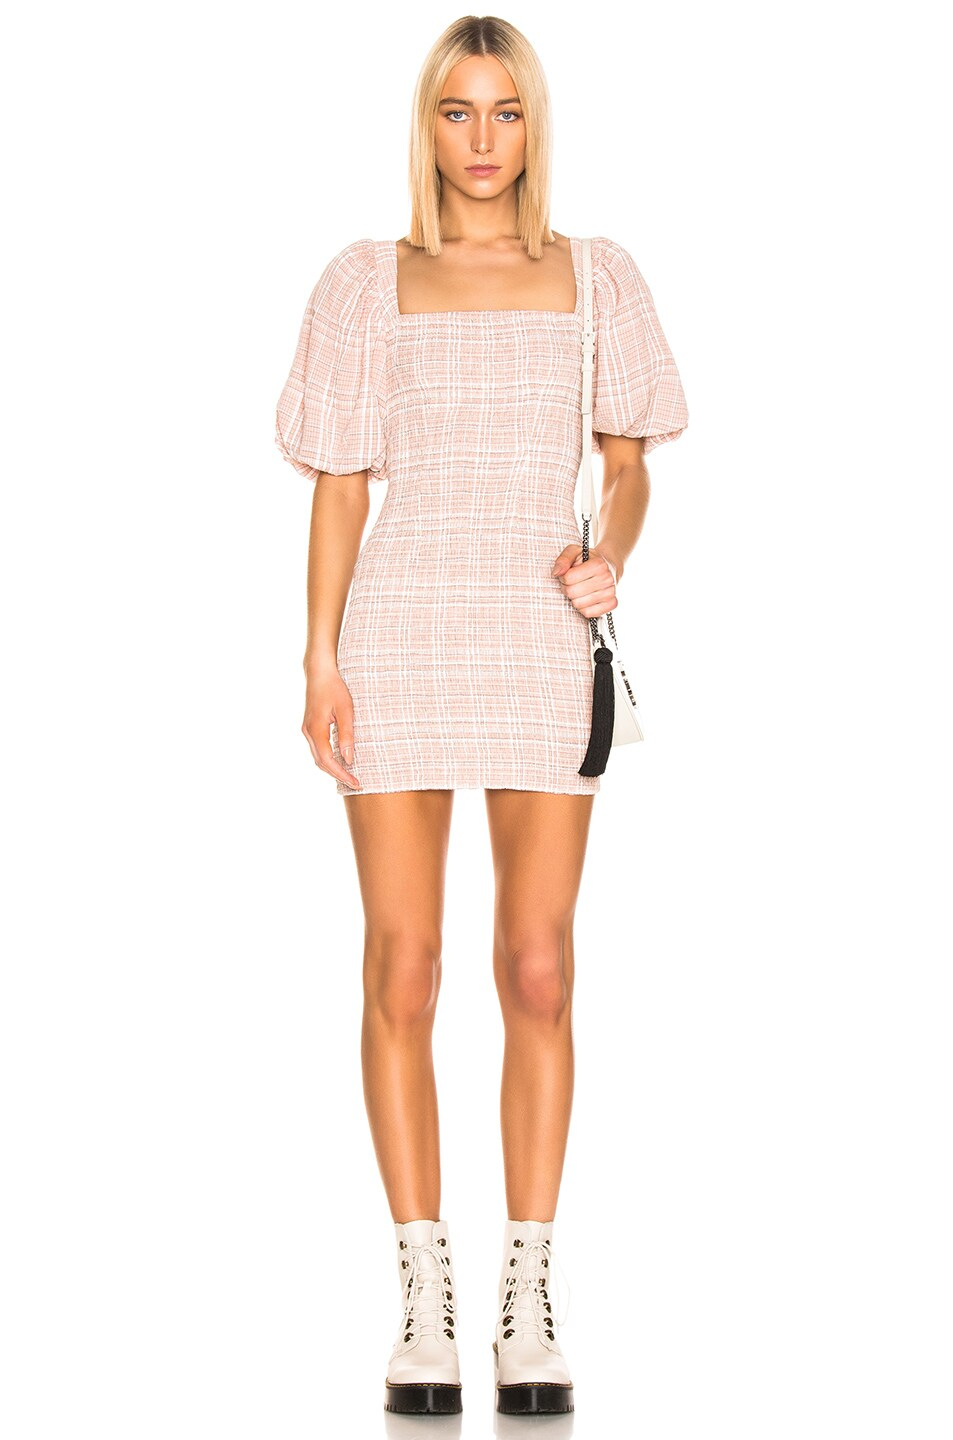 Image 1 of Atoir Fool To Love Dress in Pink Check